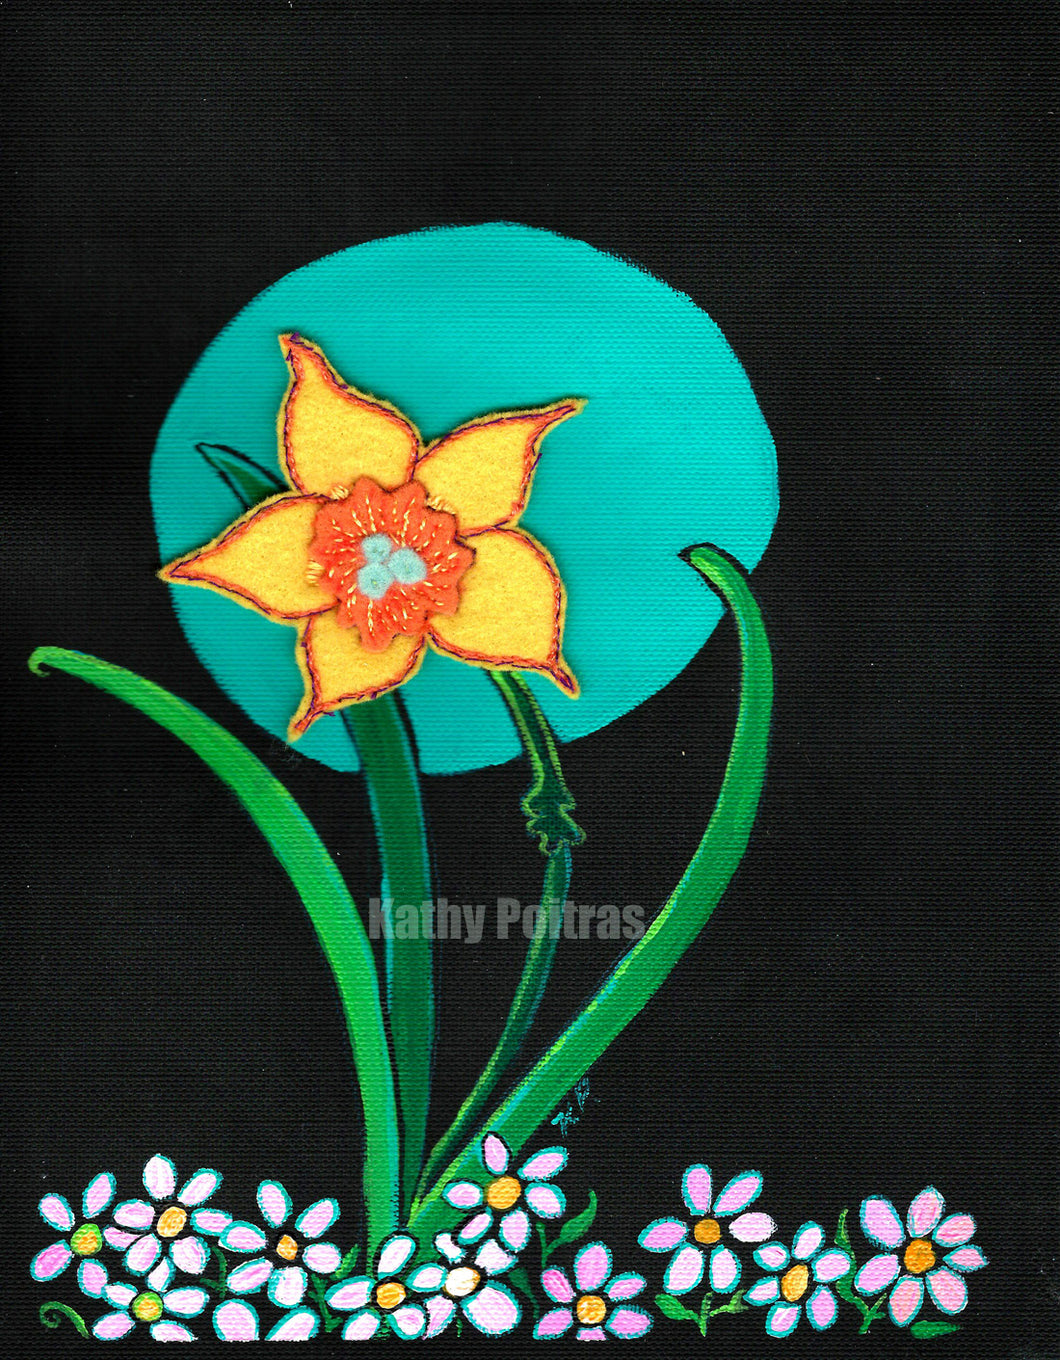 felt daffodil blossom with hand embroidery. mounted on acrylic painting  on black canvas paper with a turquoise moon and small pink flowers at the bottom